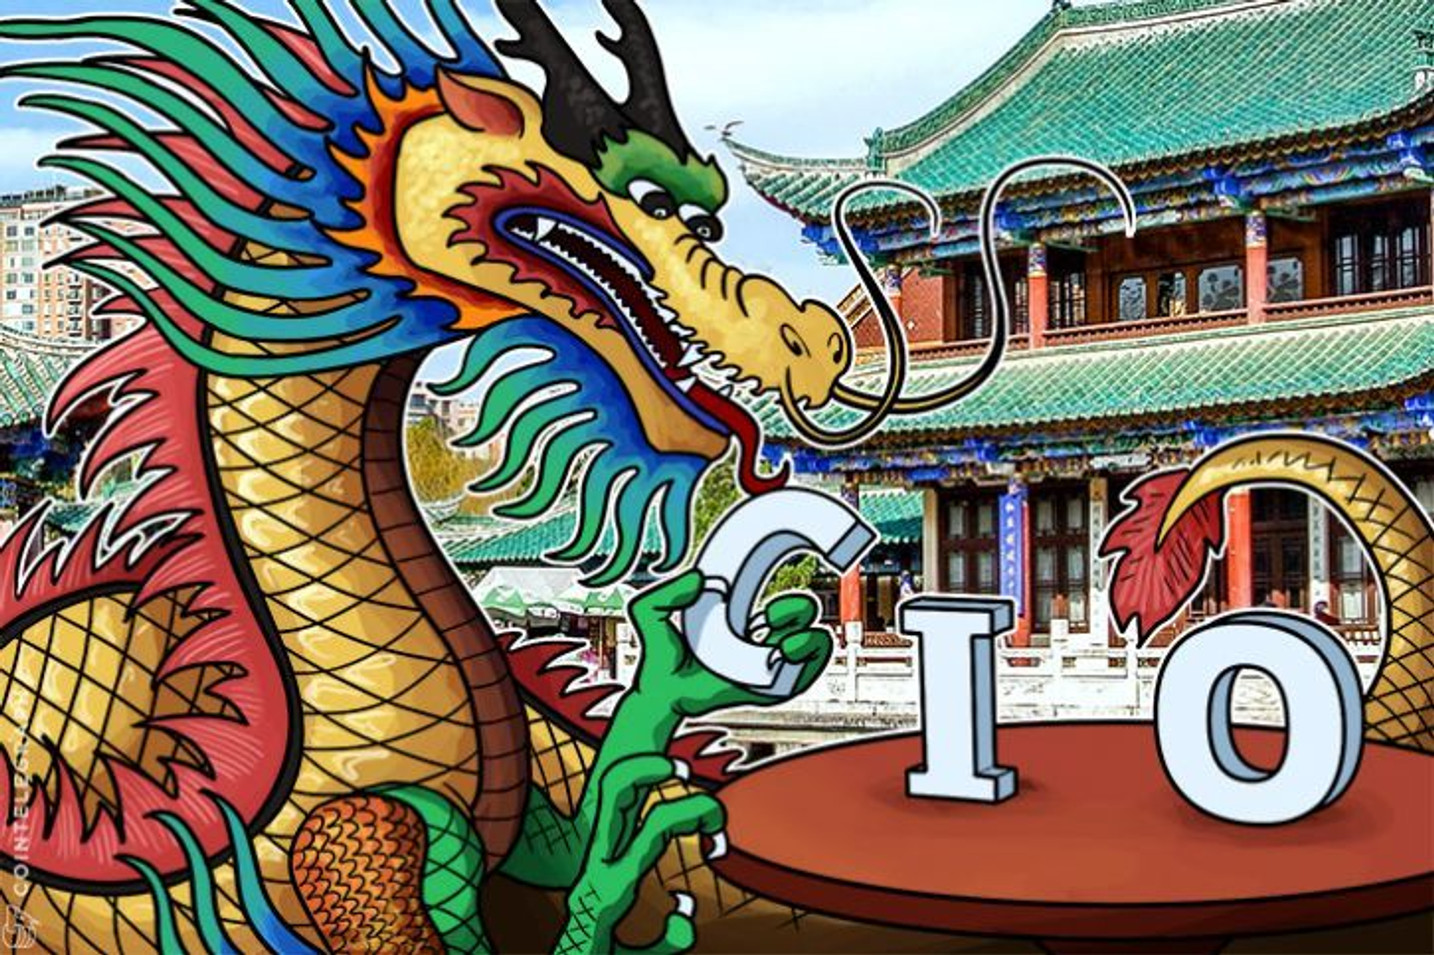 National Internet Finance Association of China Issues ICO Warning to Members